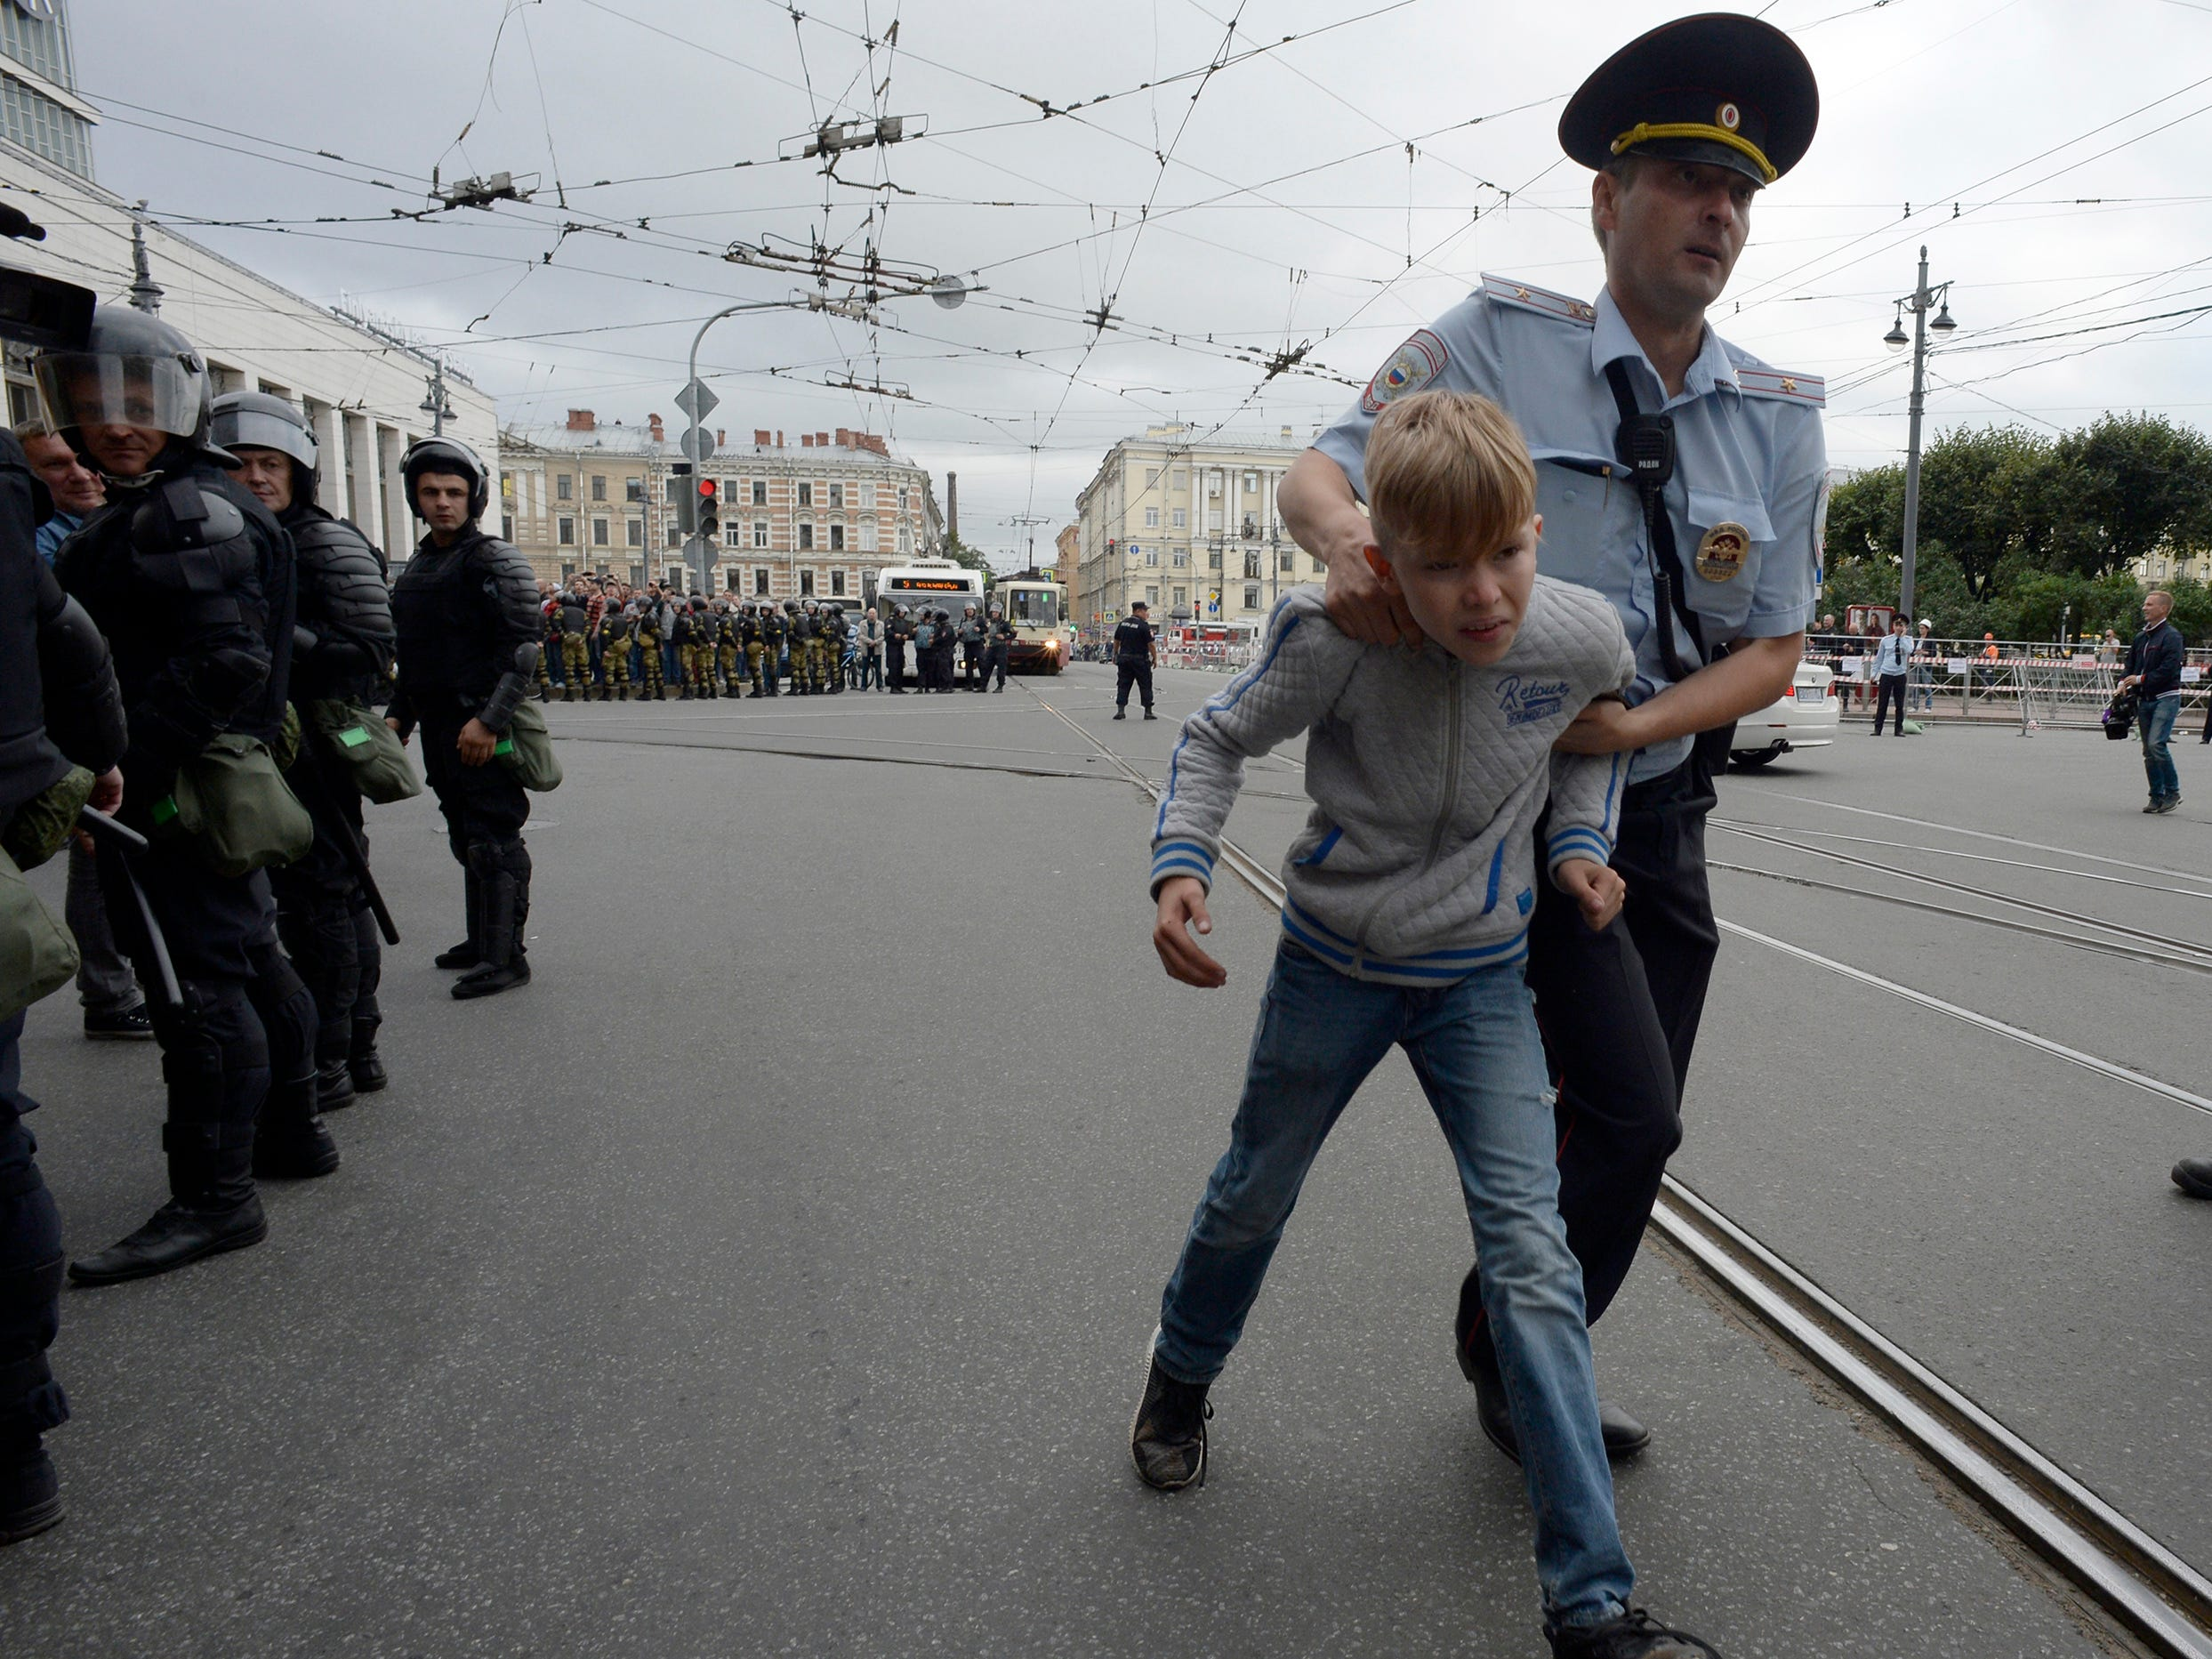 Russian police escort a youth away during a protest rally against planned increases to the nationwide pension age in Saint Petersburg on September 9, 2018.